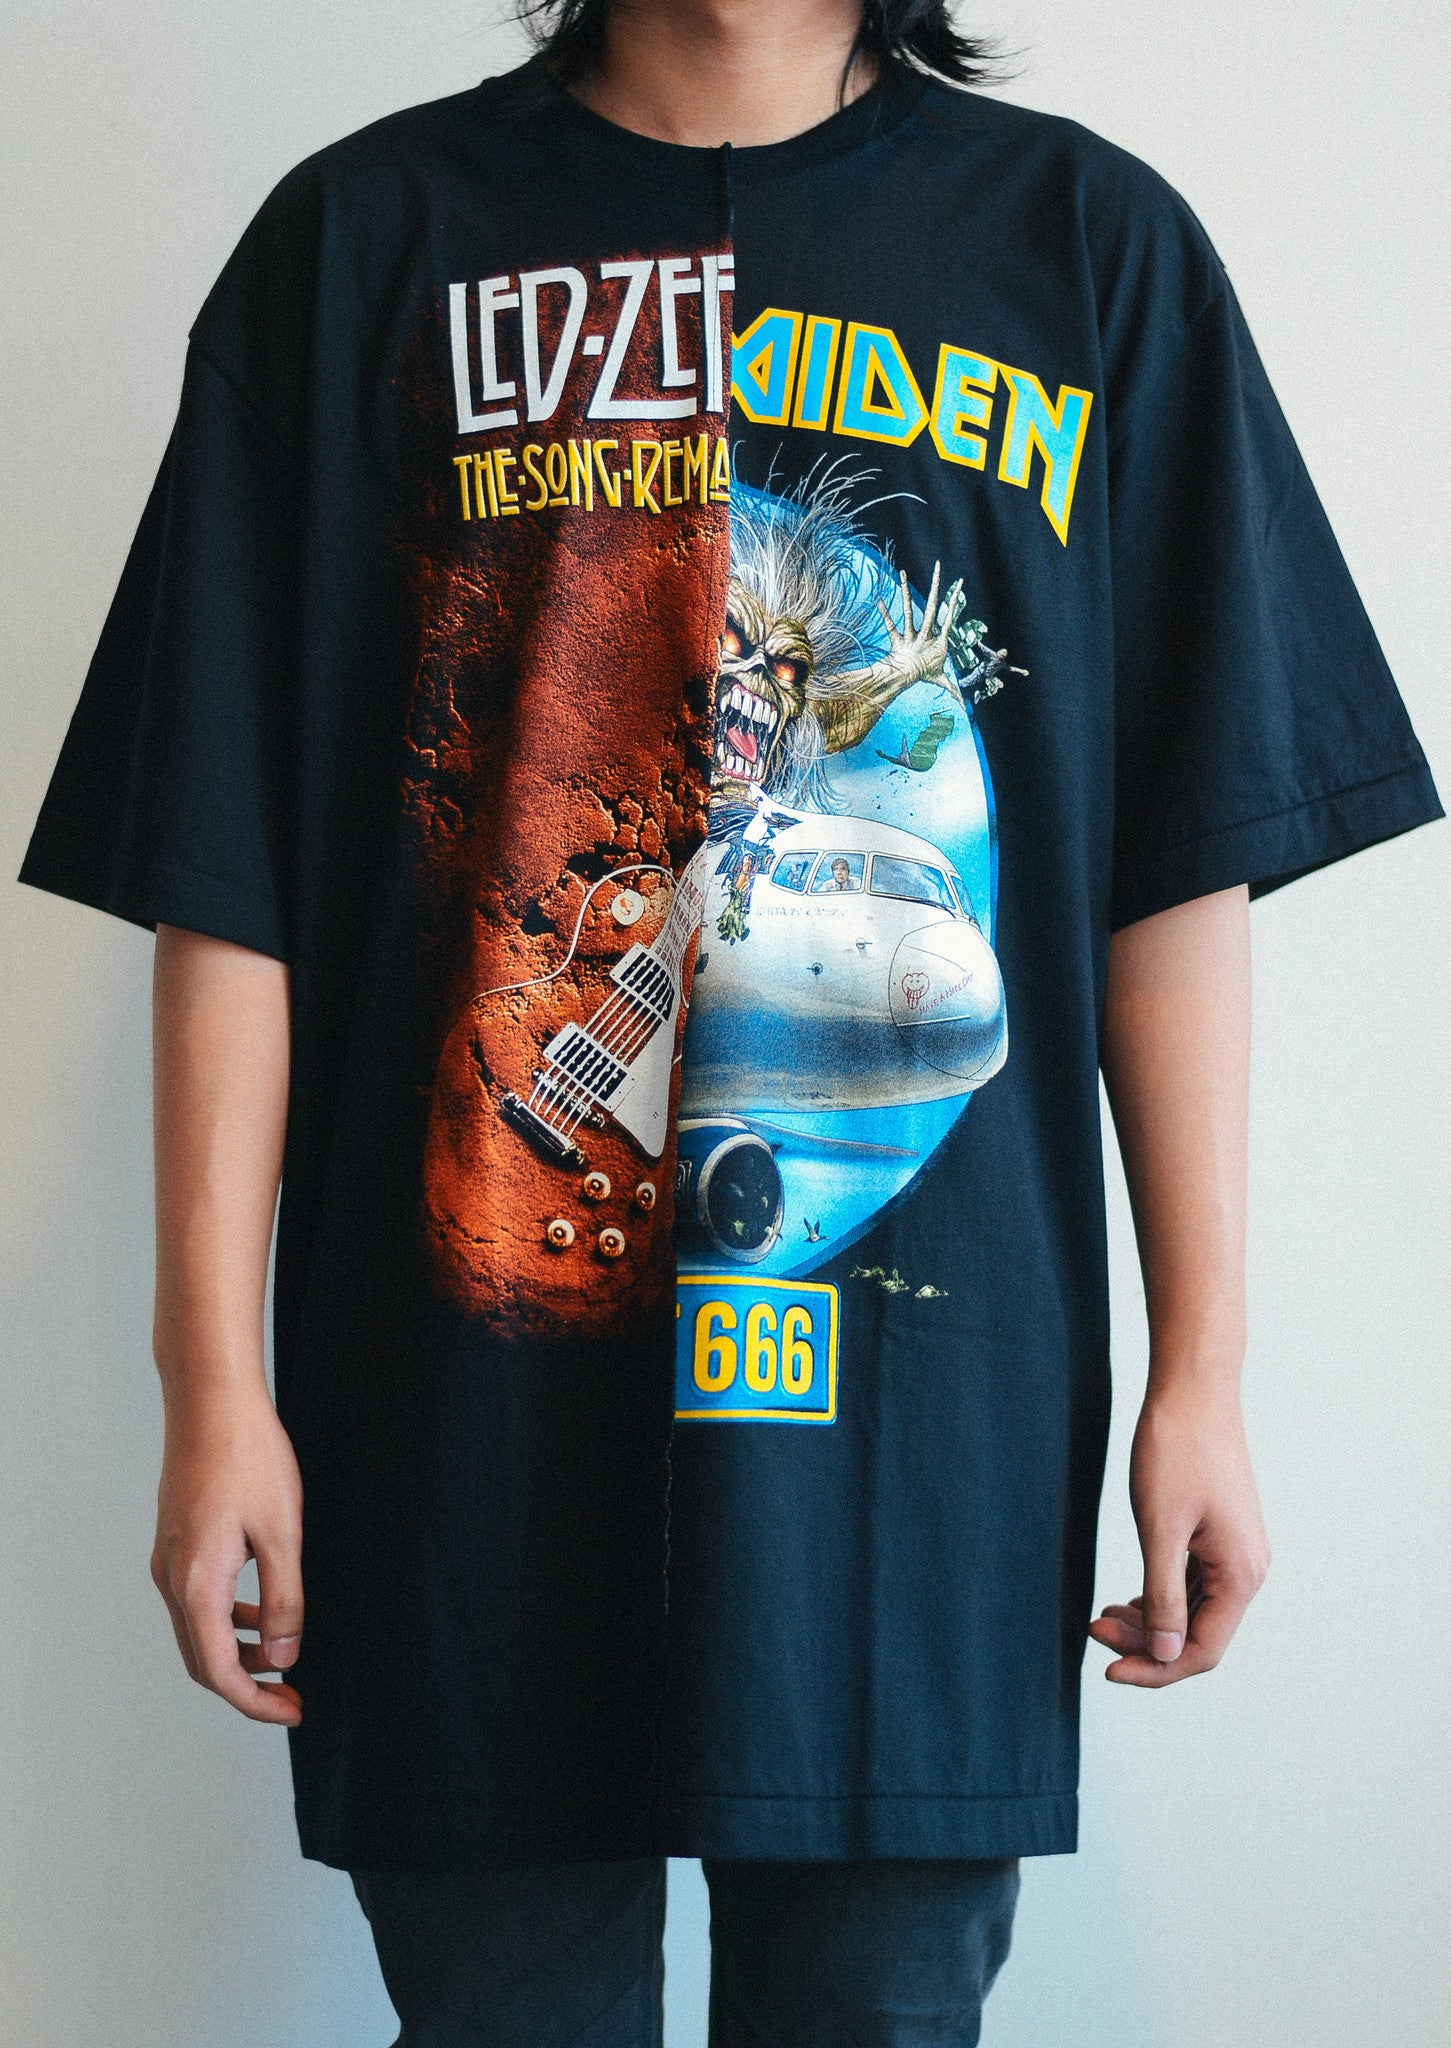 Rock Band Tee (Led-Zeppelin / Iron Maiden)